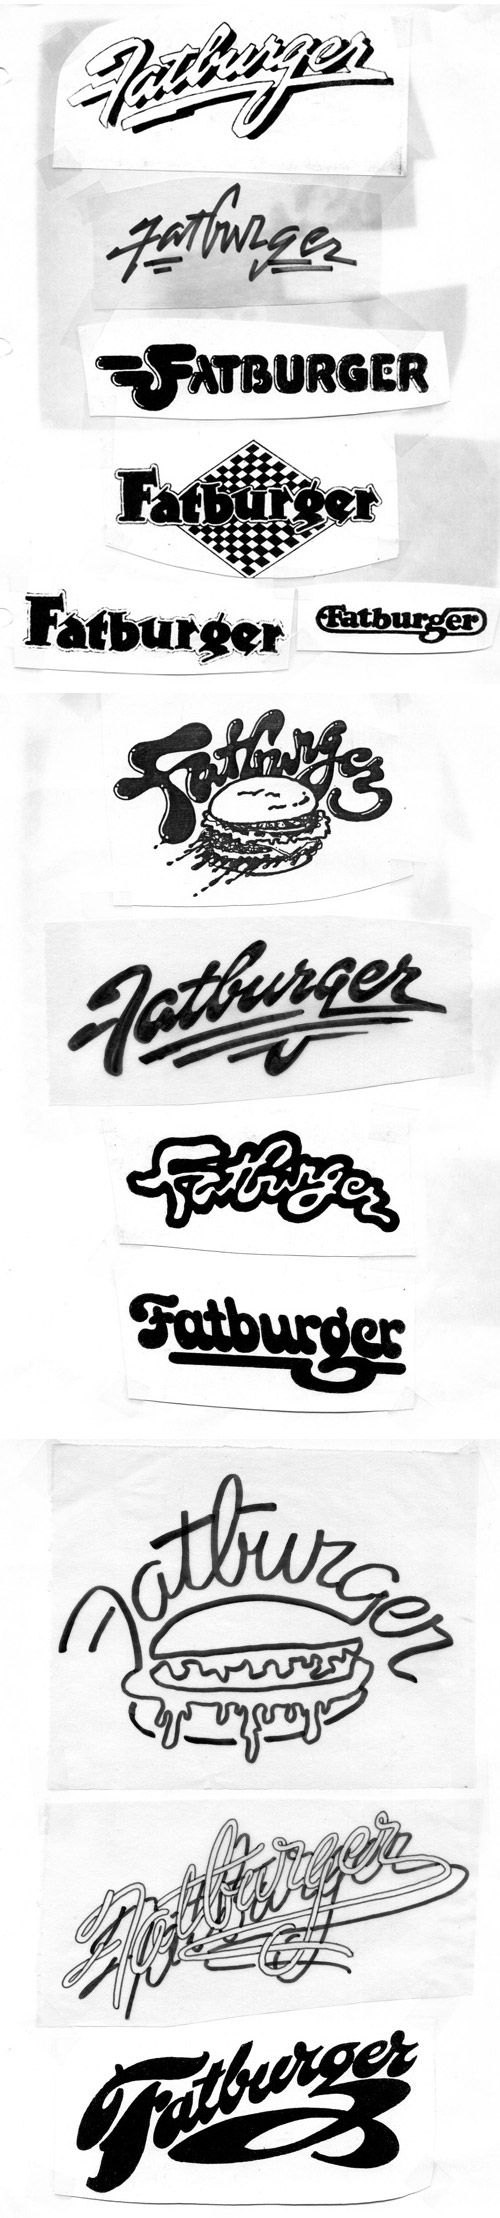 So much pileup vintage pro wrestling logos - Fatburger Logo Never Heard Of This But Still Interesting To Look At Their Logo Designs